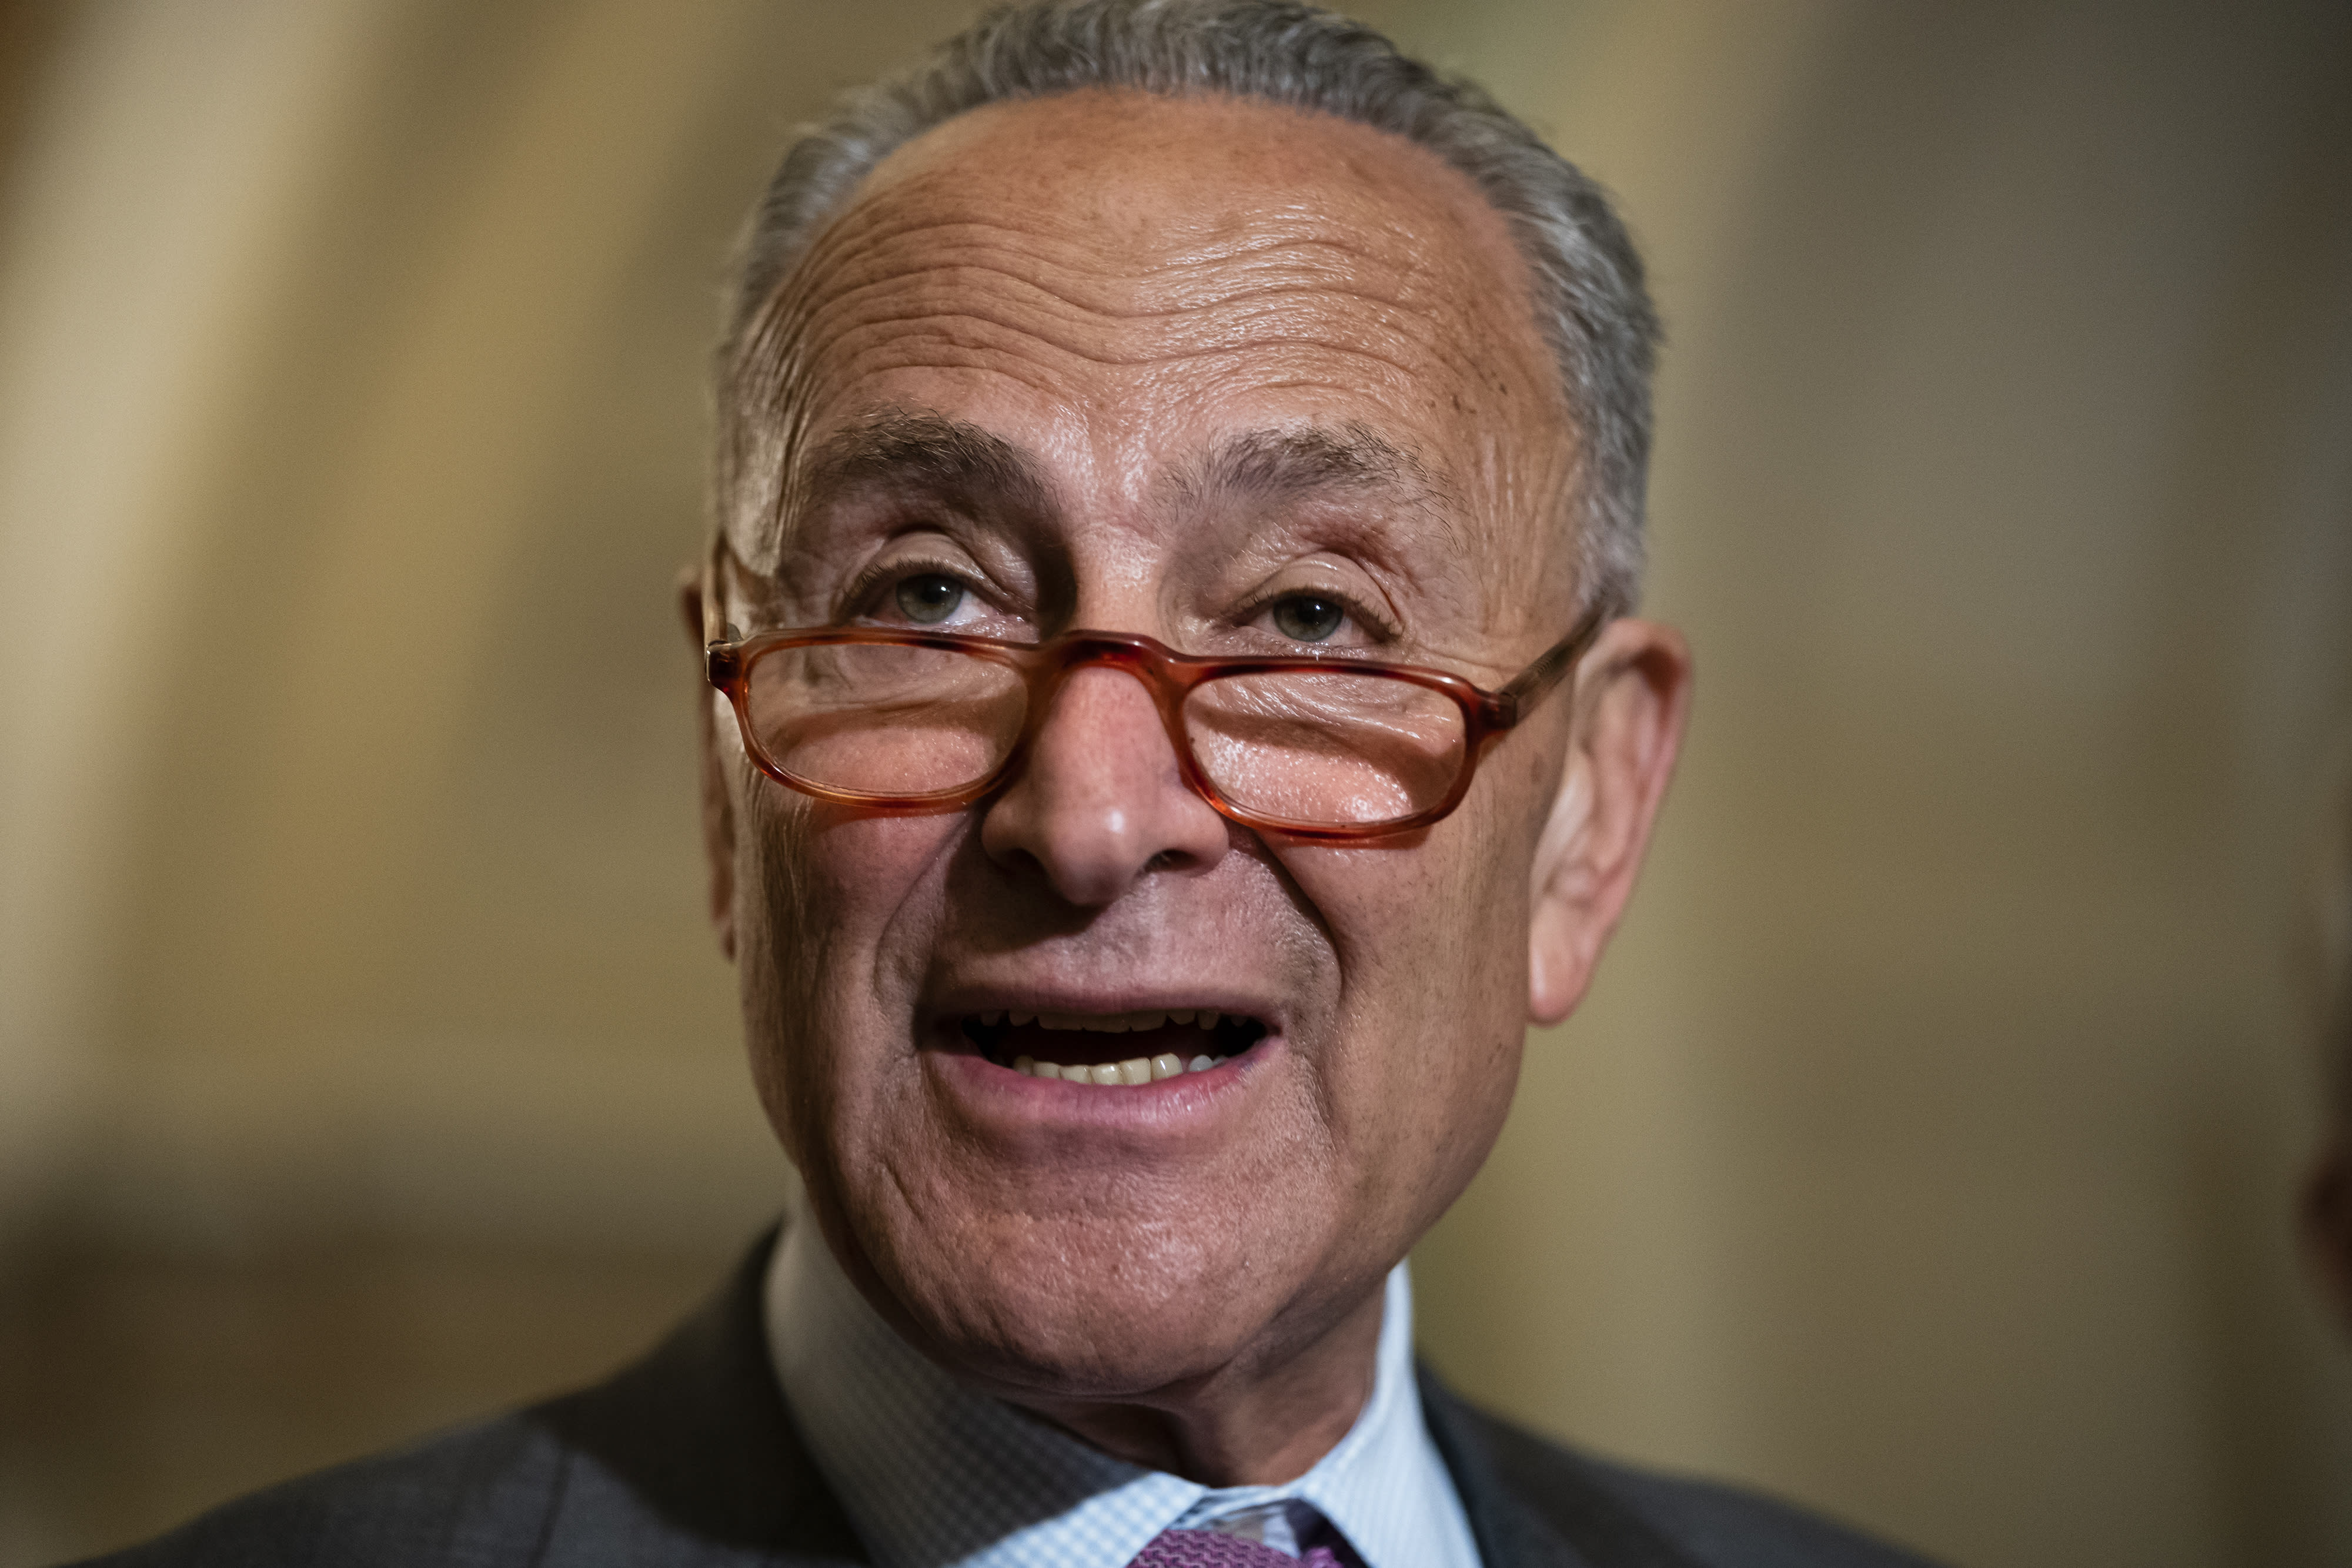 Senate Minority Leader Chuck Schumer, D-N.Y., condemns remarks by President Donald Trump as he speaks to reporters following a Democratic policy meeting, at the Capitol in Washington, Tuesday, July 16, 2019. (AP Photo/J. Scott Applewhite)